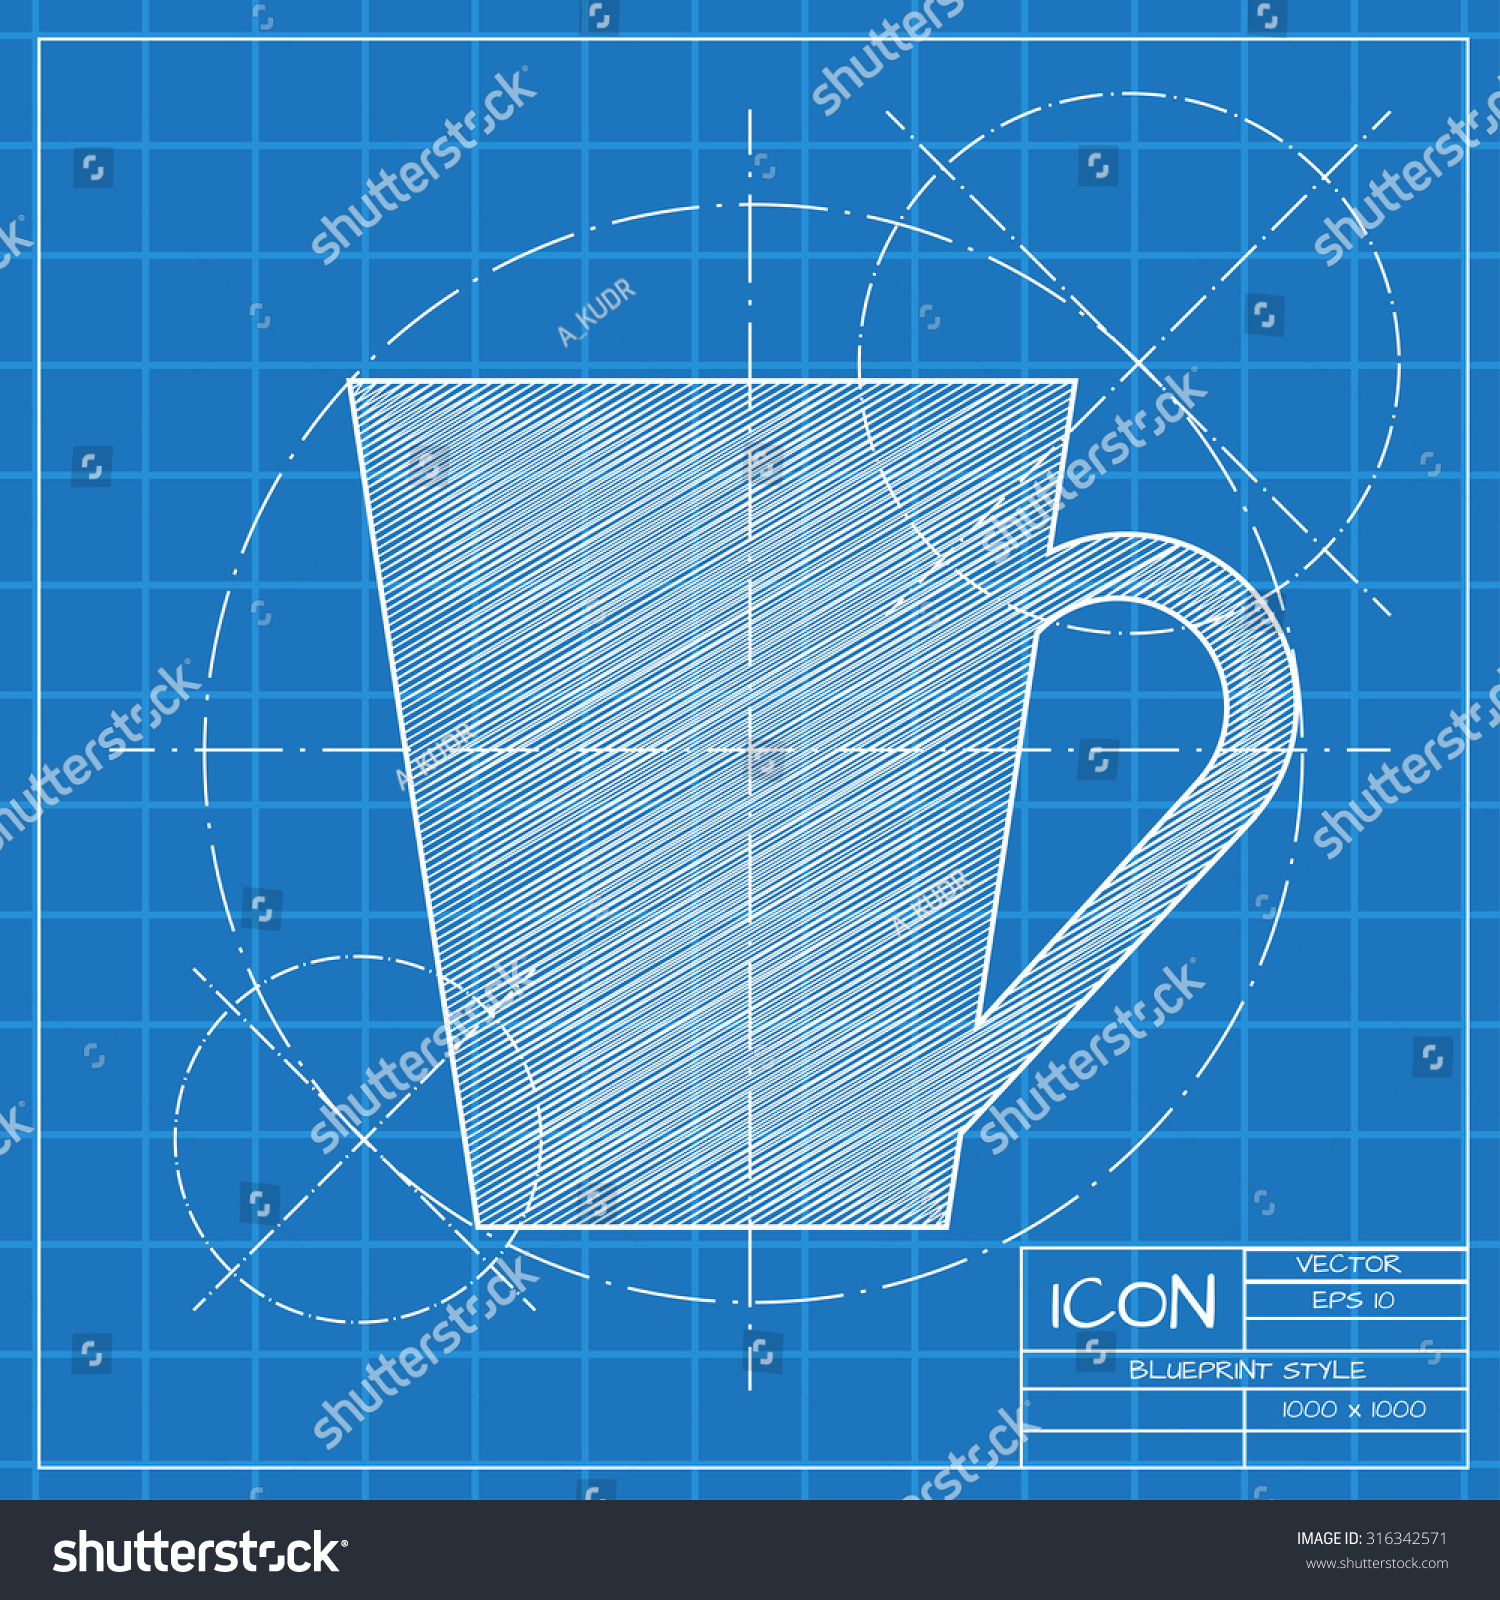 Vector blueprint cup tea coffee icon stock vector 2018 316342571 vector blueprint cup for tea or coffee icon on engineer or architect background malvernweather Images